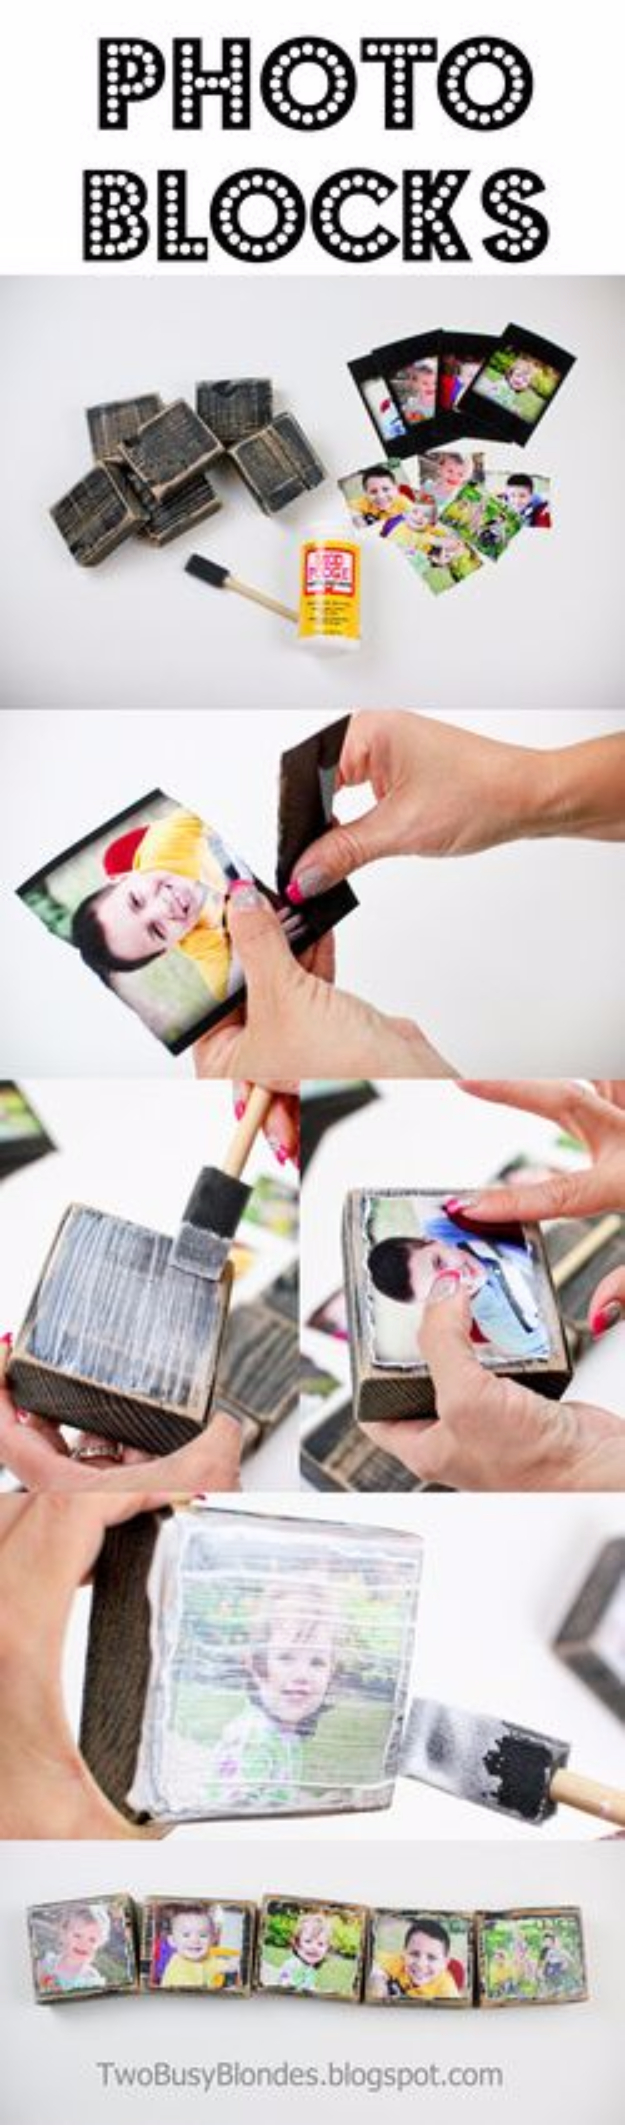 DIY Photo Crafts and Projects for Pictures - Creative Photo Blocks - Handmade Picture Frame Ideas and Step by Step Tutorials for Making Cool DIY Gifts and Home Decor - Cheap and Easy Photo Frames, Creative Ways to Frame and Mount Photos on Canvas and Display Them In Your House http://diyjoy.com/handmade-photo-crafts